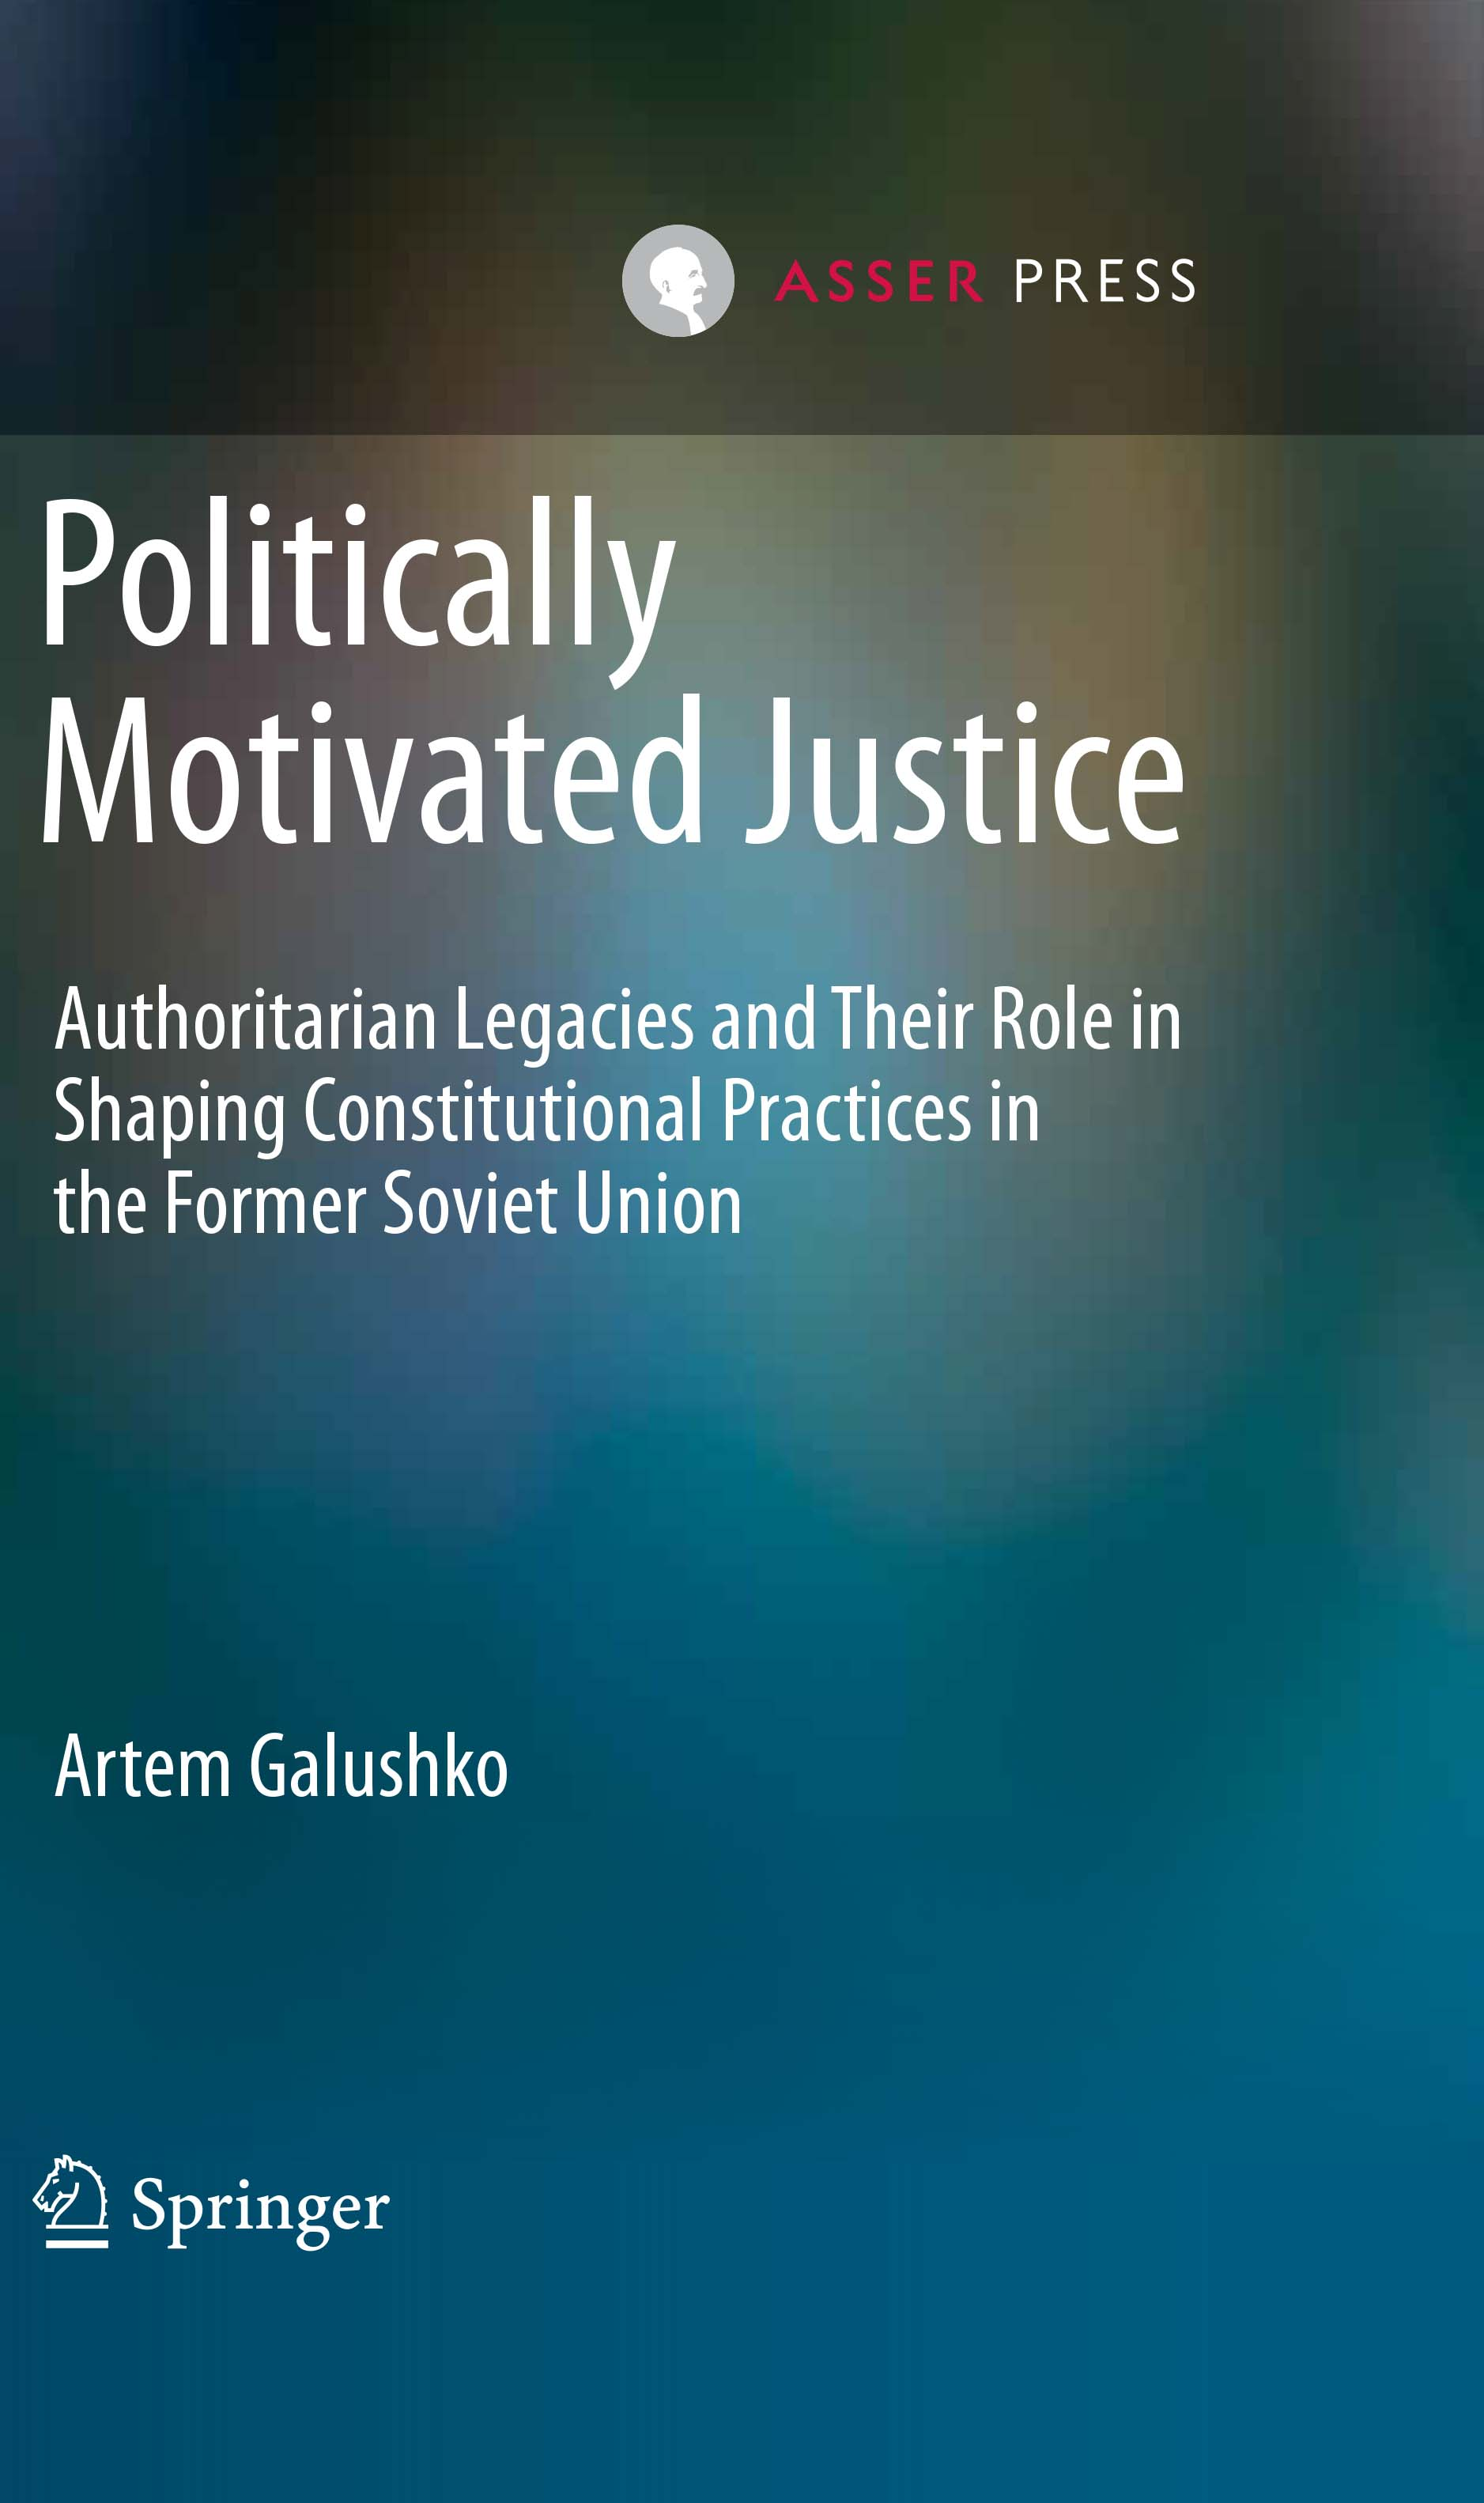 Politically Motivated Justice - Authoritarian Legacies and their Role in Shaping Constitutional Practices in the Former Soviet Union